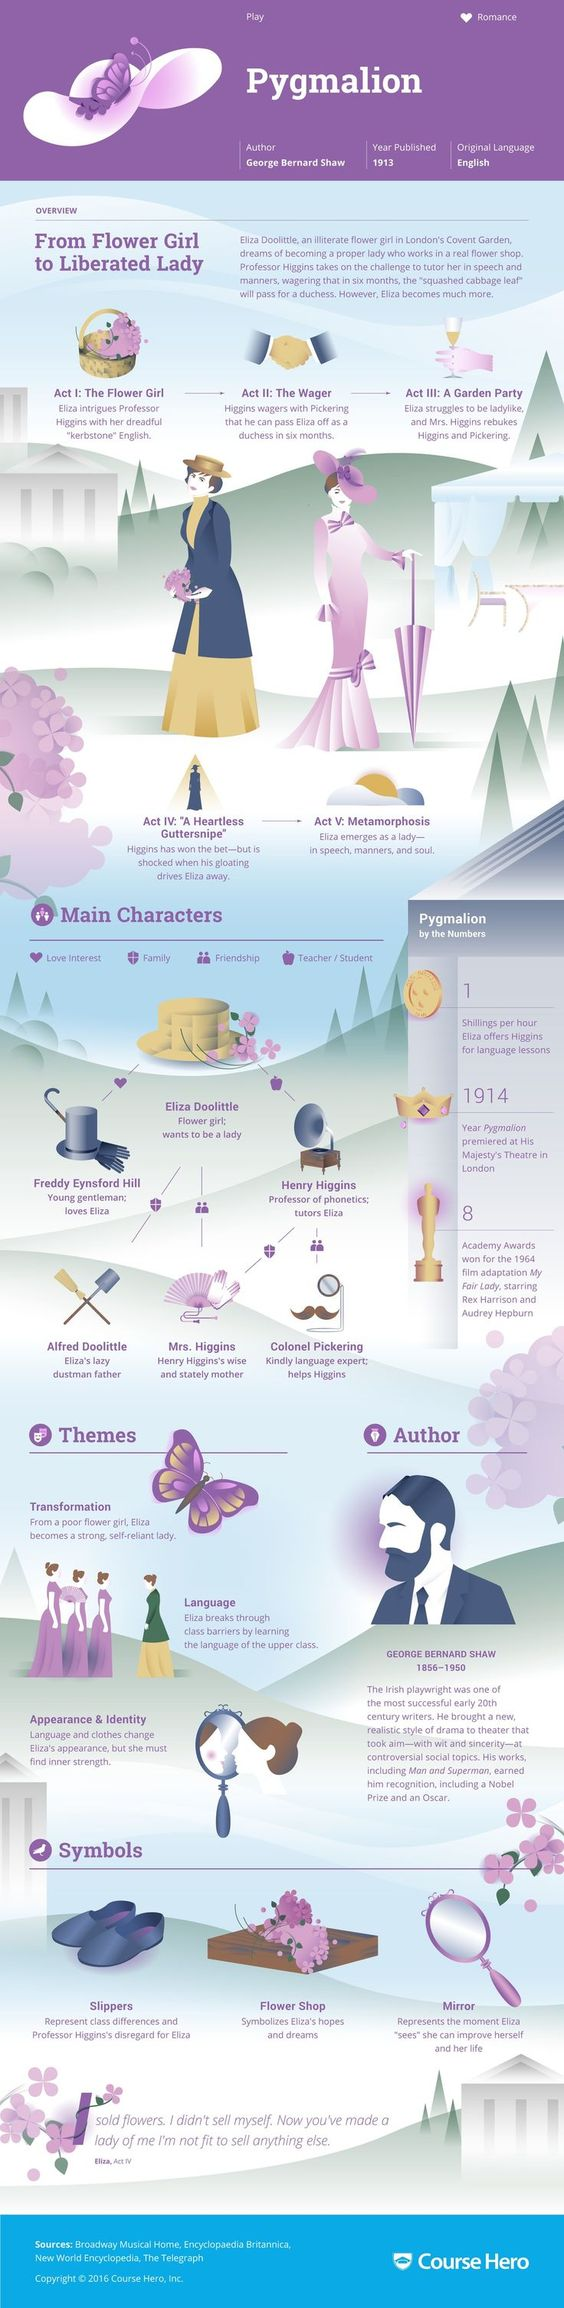 pyg on infographic course hero world literature resources study guide for george bernard shaw s pyg on including act summary character analysis and more learn all about pyg on ask questions